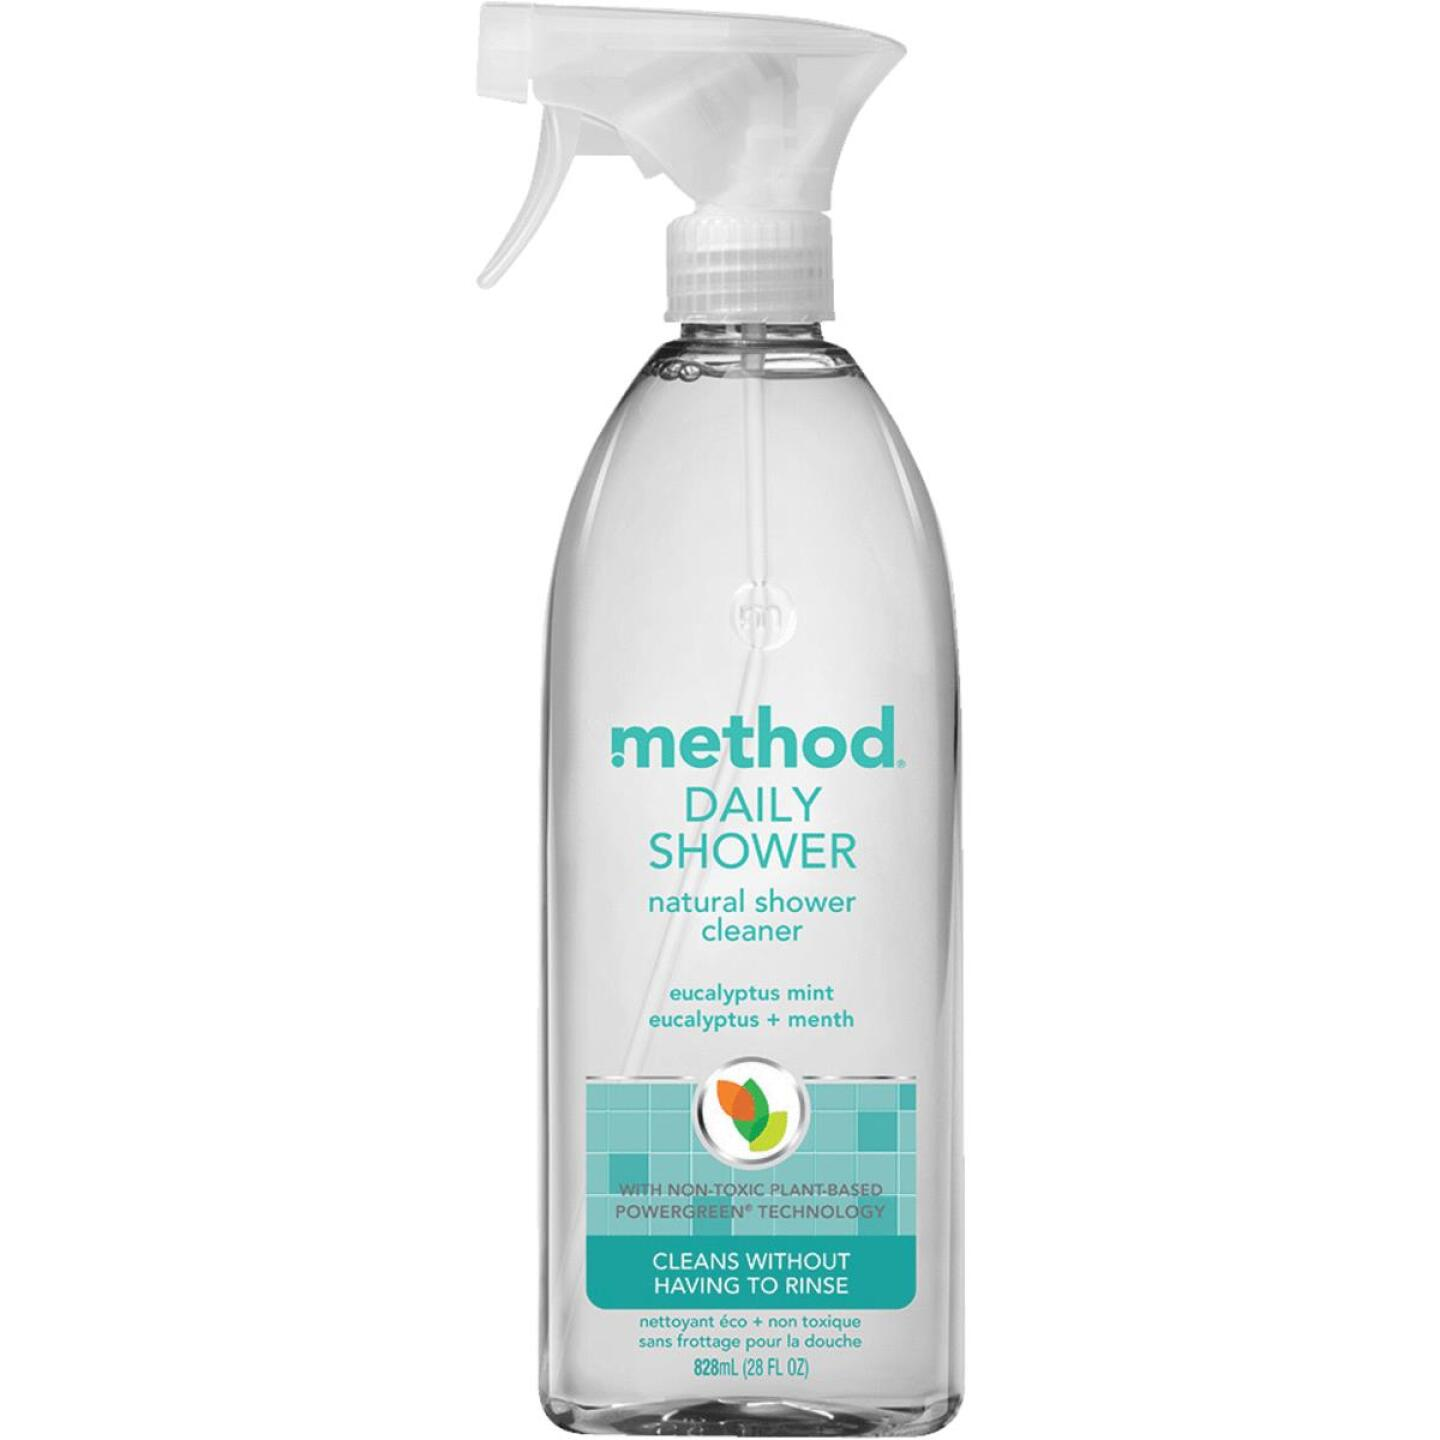 Method 28 Oz. Daily Shower Cleaner Image 1